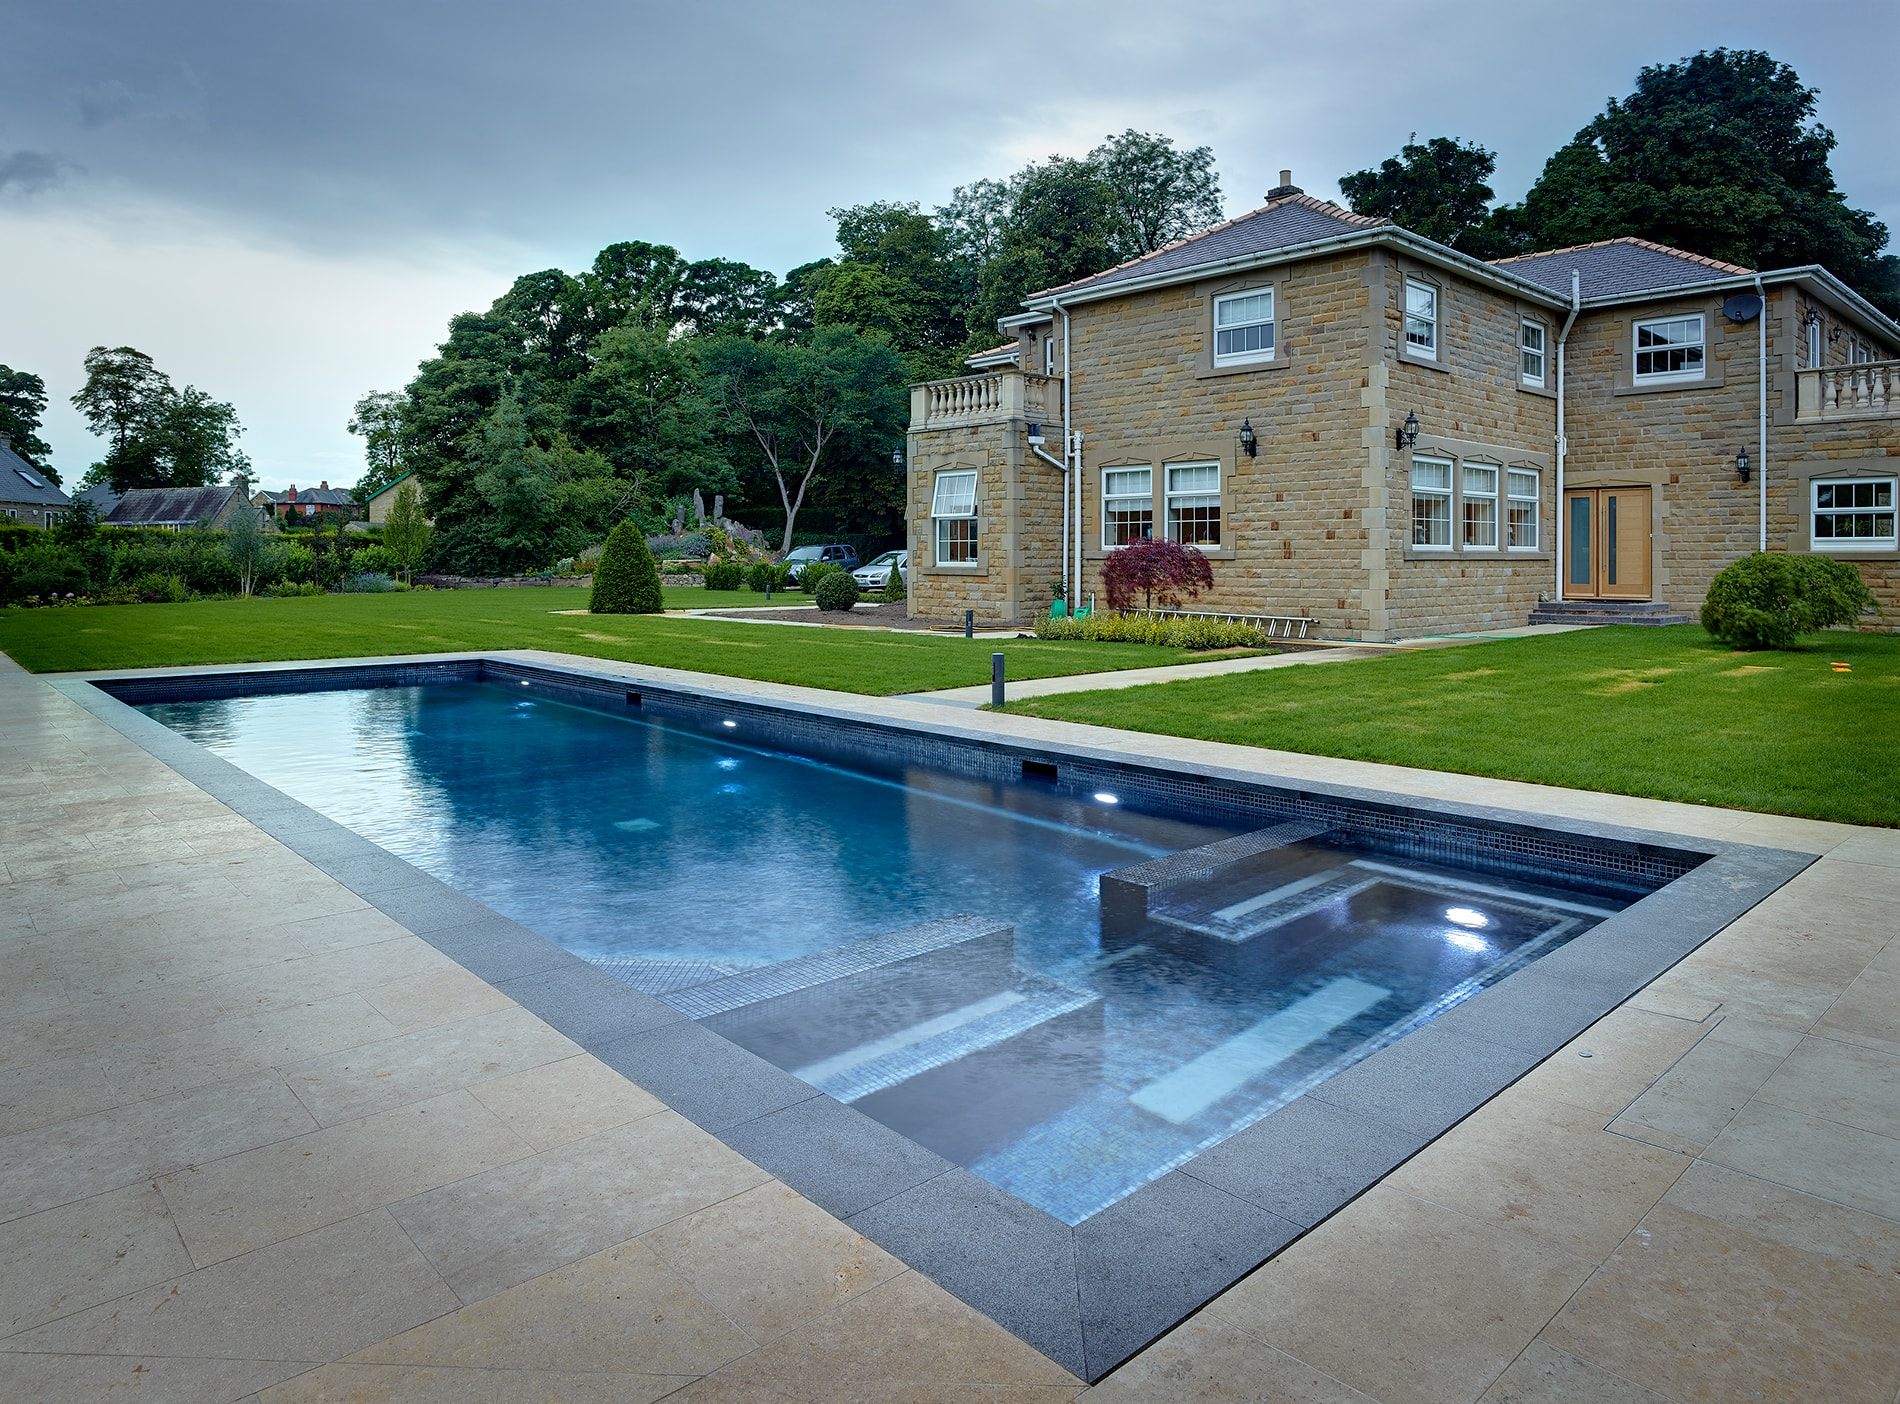 Piscina en villa privada de batley uk ezarri for Constructores de piscinas